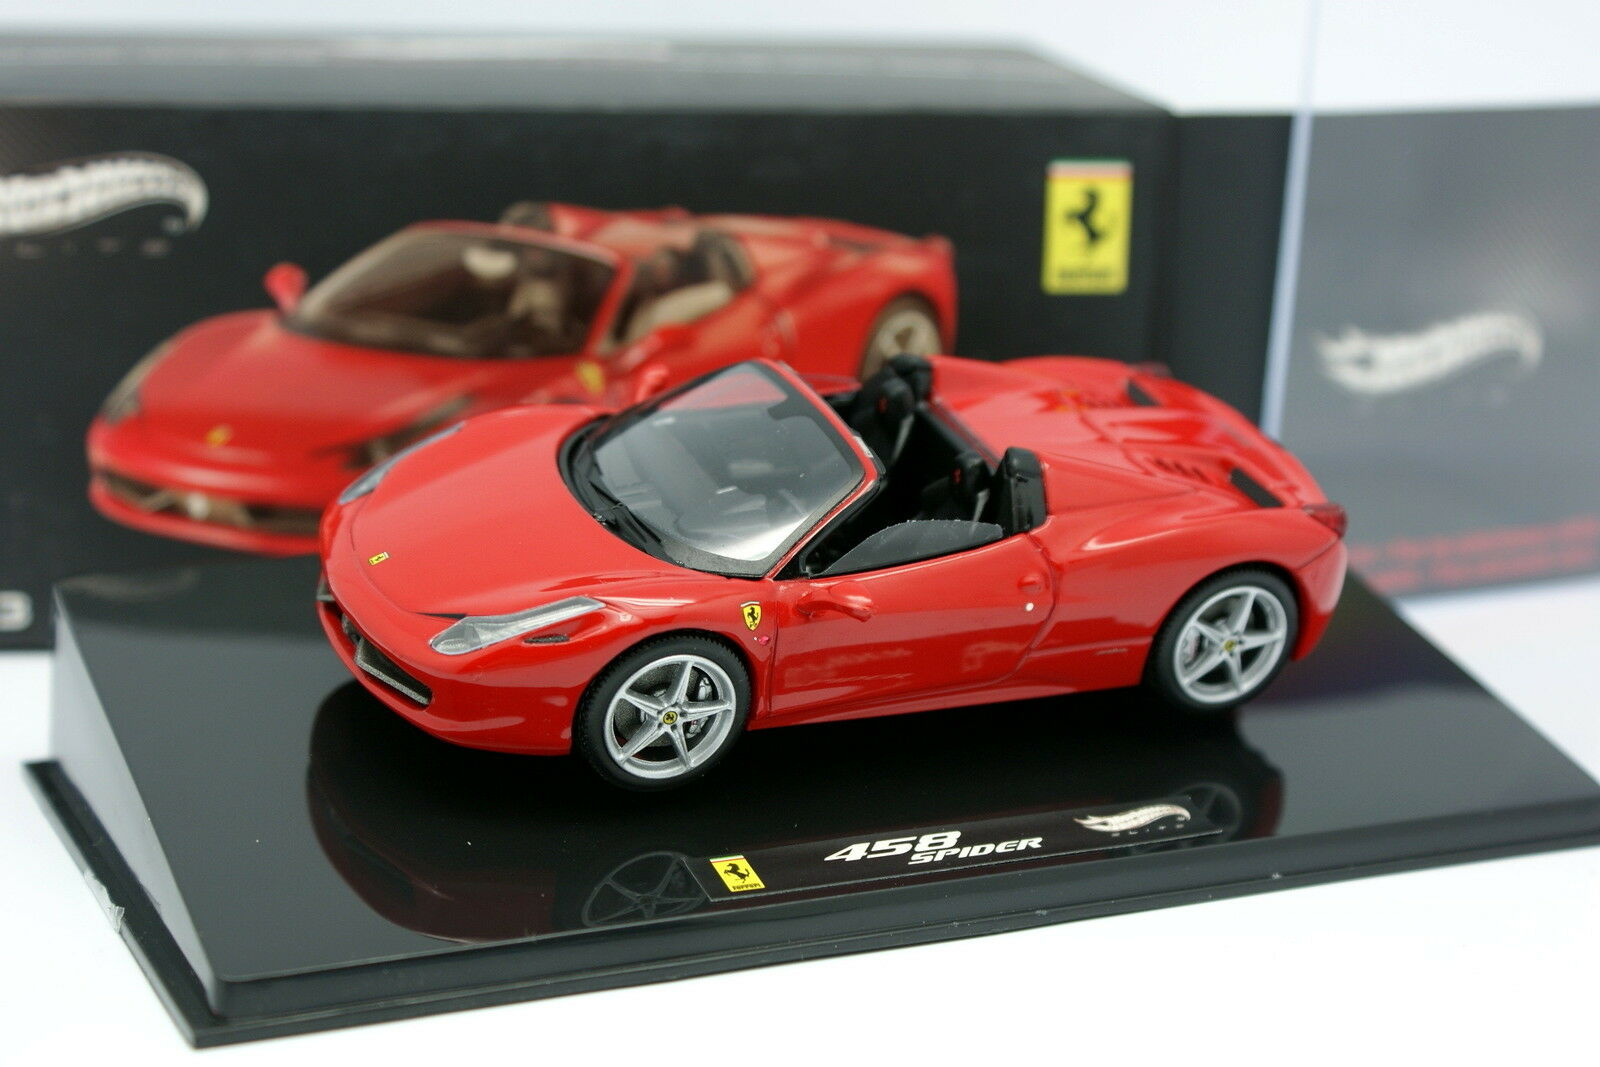 Hot Wheels 1 43 43 43 - Ferrari 458 Spider red 263e1d